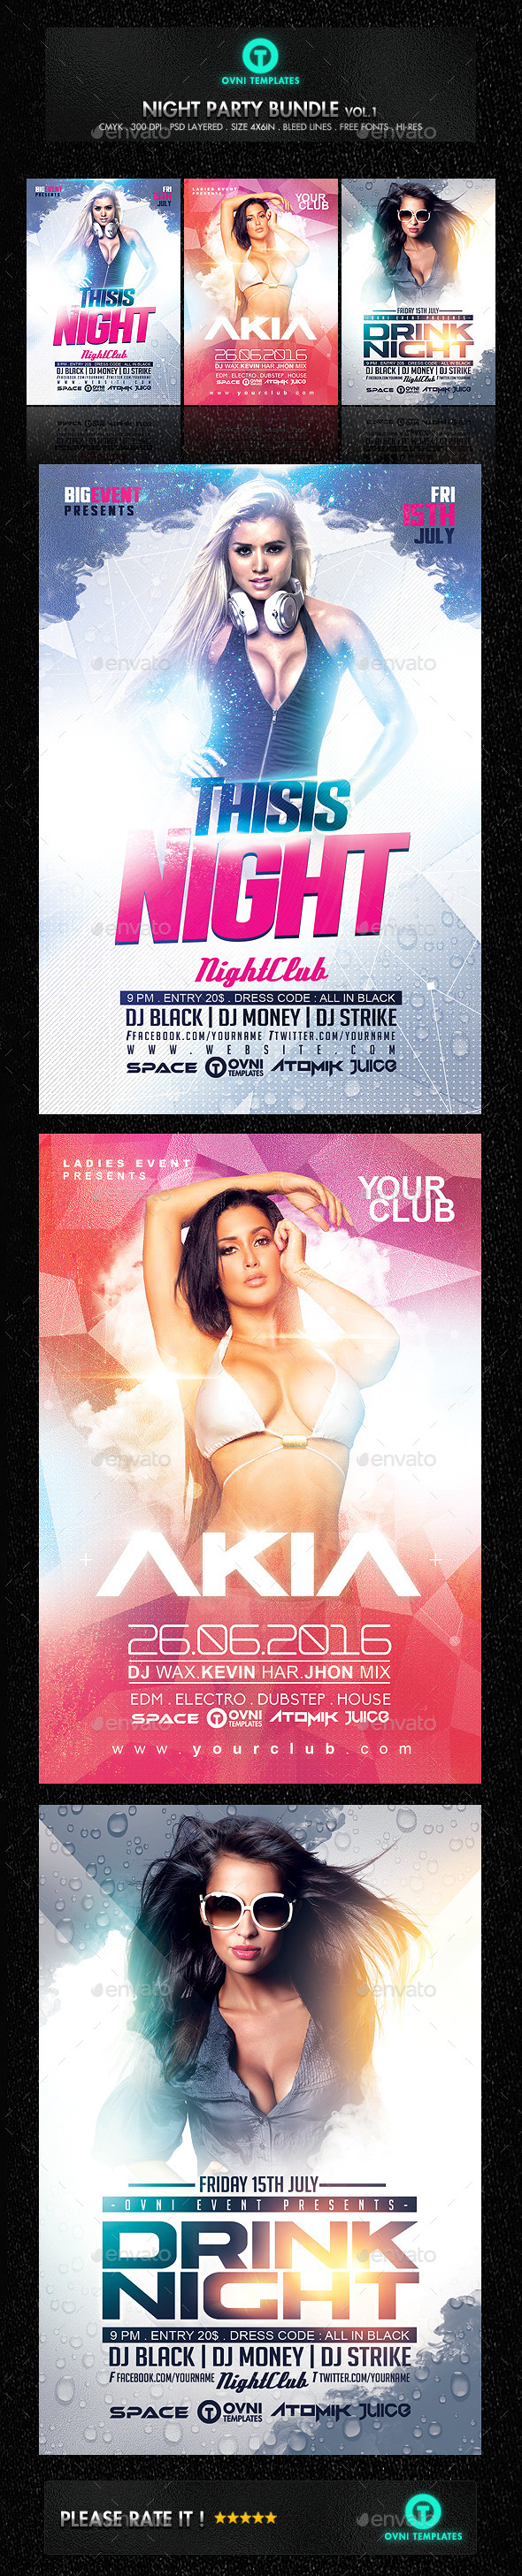 Party Night Sexy Girls Flyer Bundle Template #design Download: http://graphicriver.net/item/party-night-sexy-girls-flyer-bundle/12471842?ref=ksioks